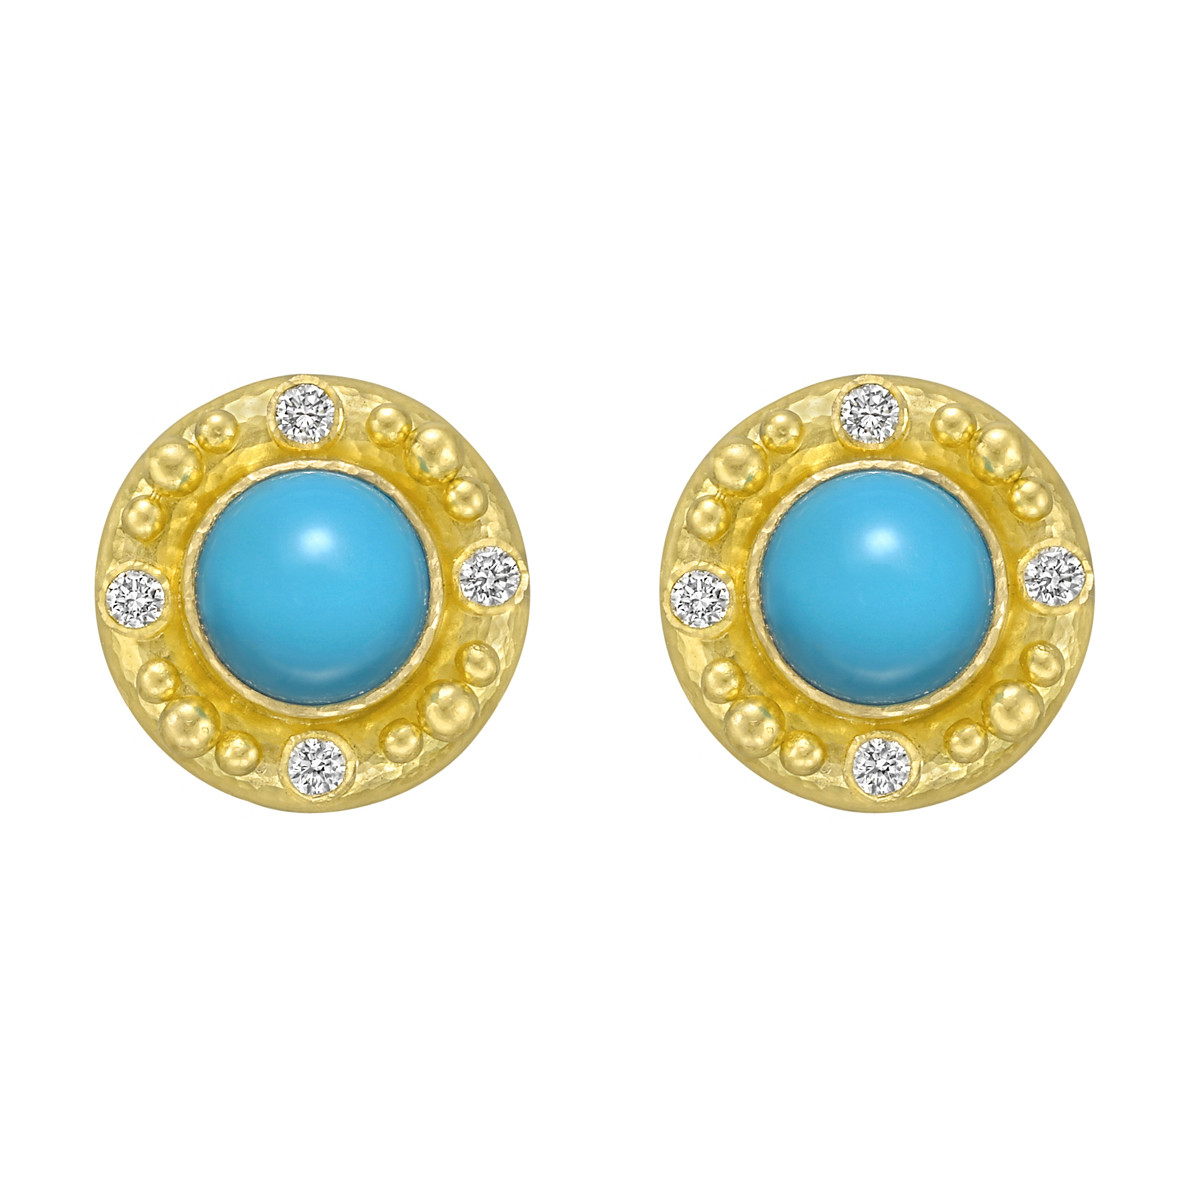 19k Yellow Gold & Turquoise Earrings